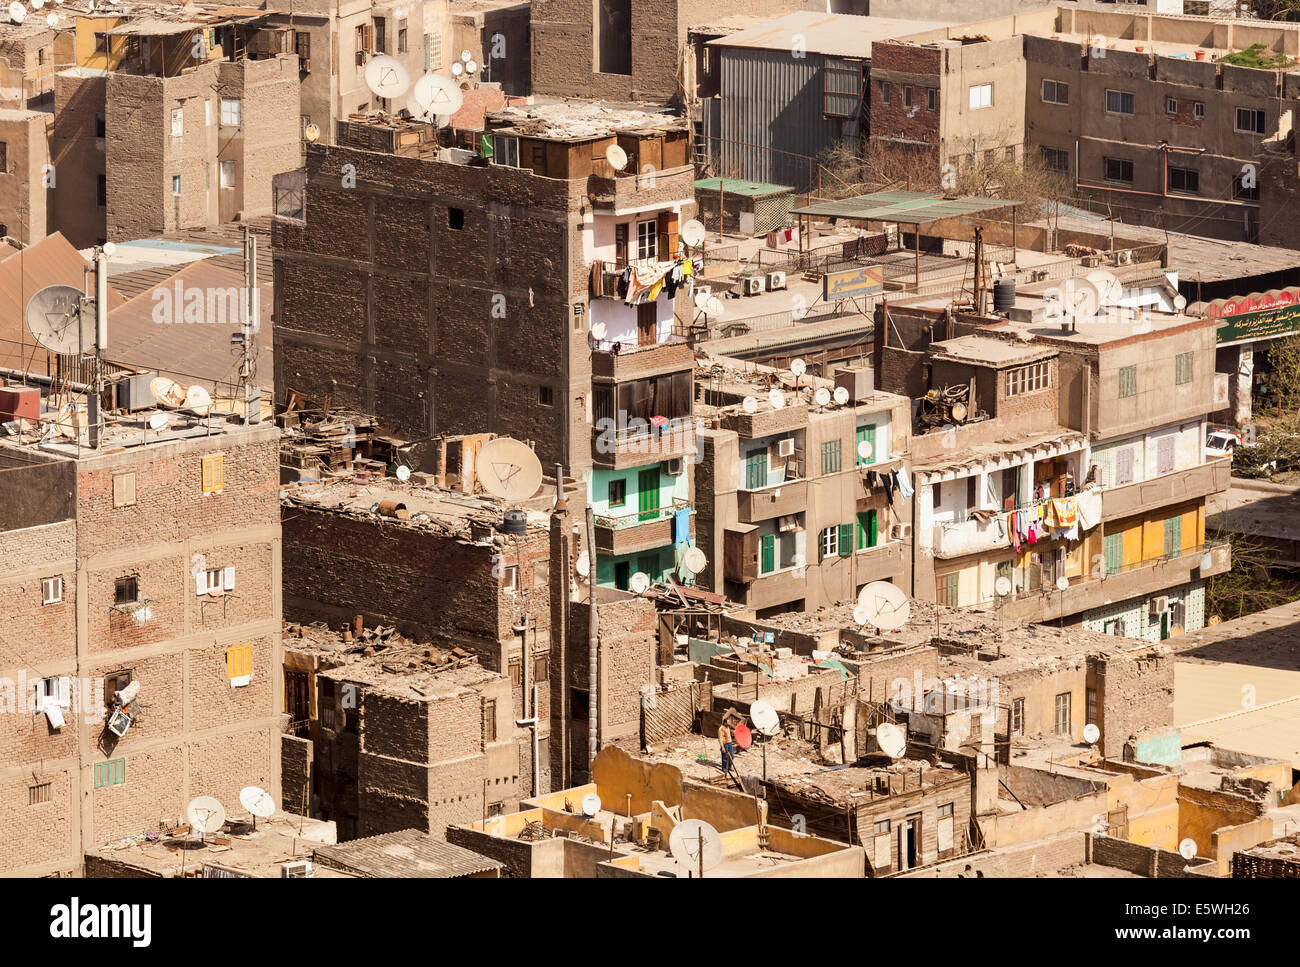 Cairo, Egypt - Roofs of slum buildings in downtown Cairo - Stock Image